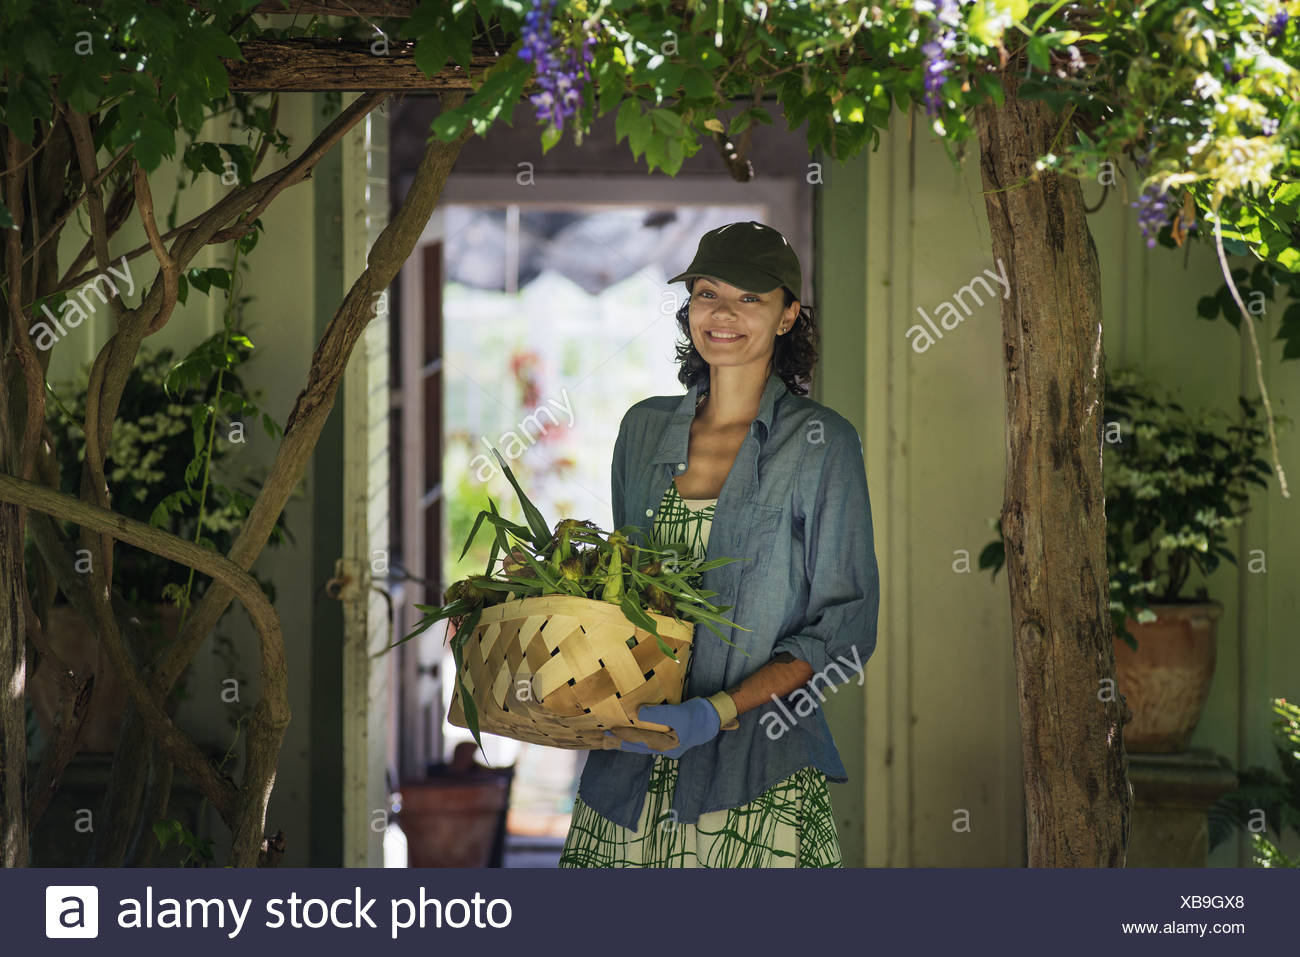 New York state USA young woman in farmhouse kitchen with large window - Stock Image